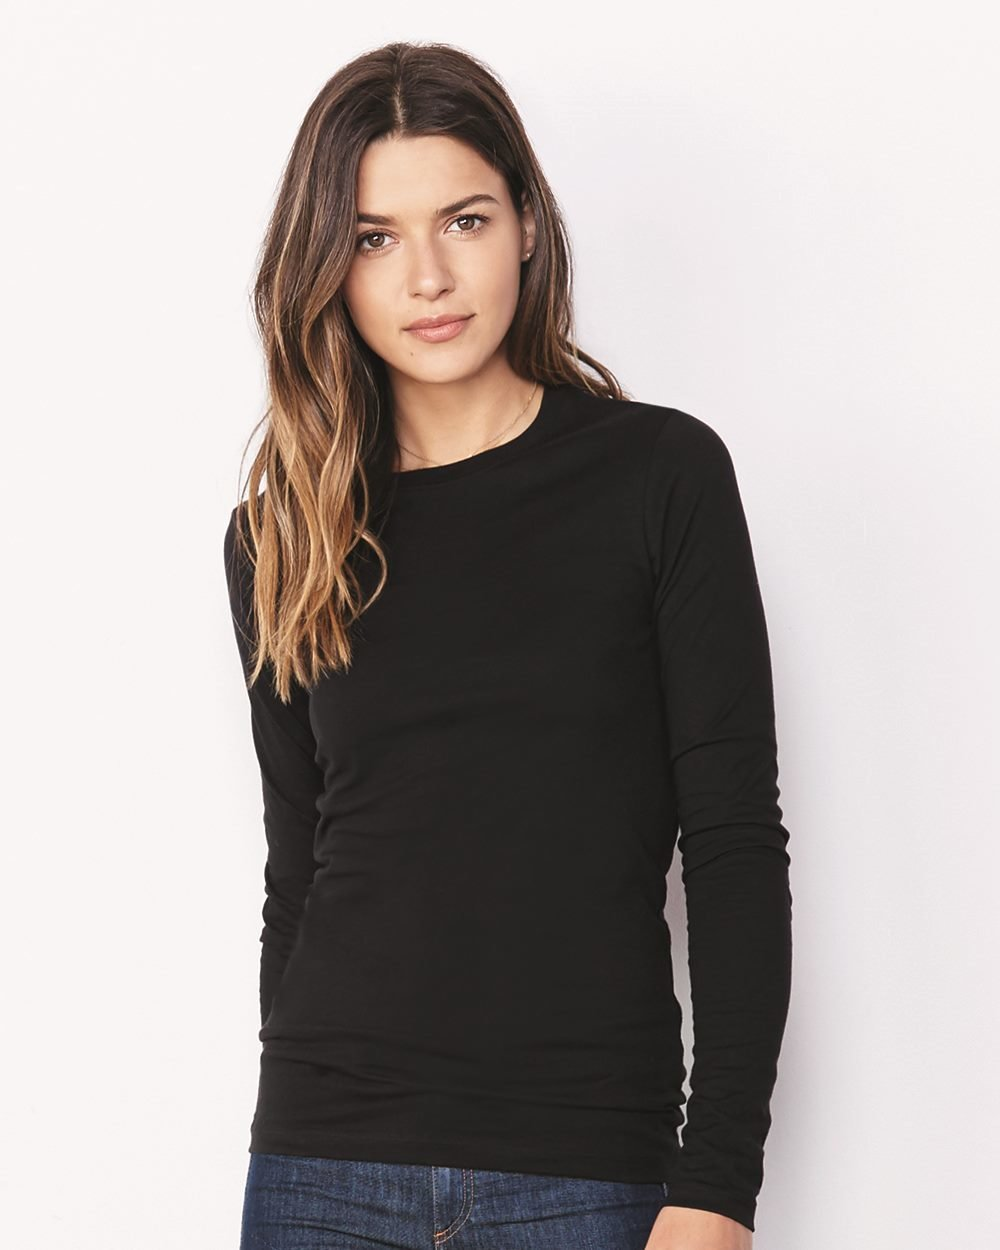 Women's Relaxed Long Sleeve Crew Neck Jersey Tee - (STYLE#PRBC006450)